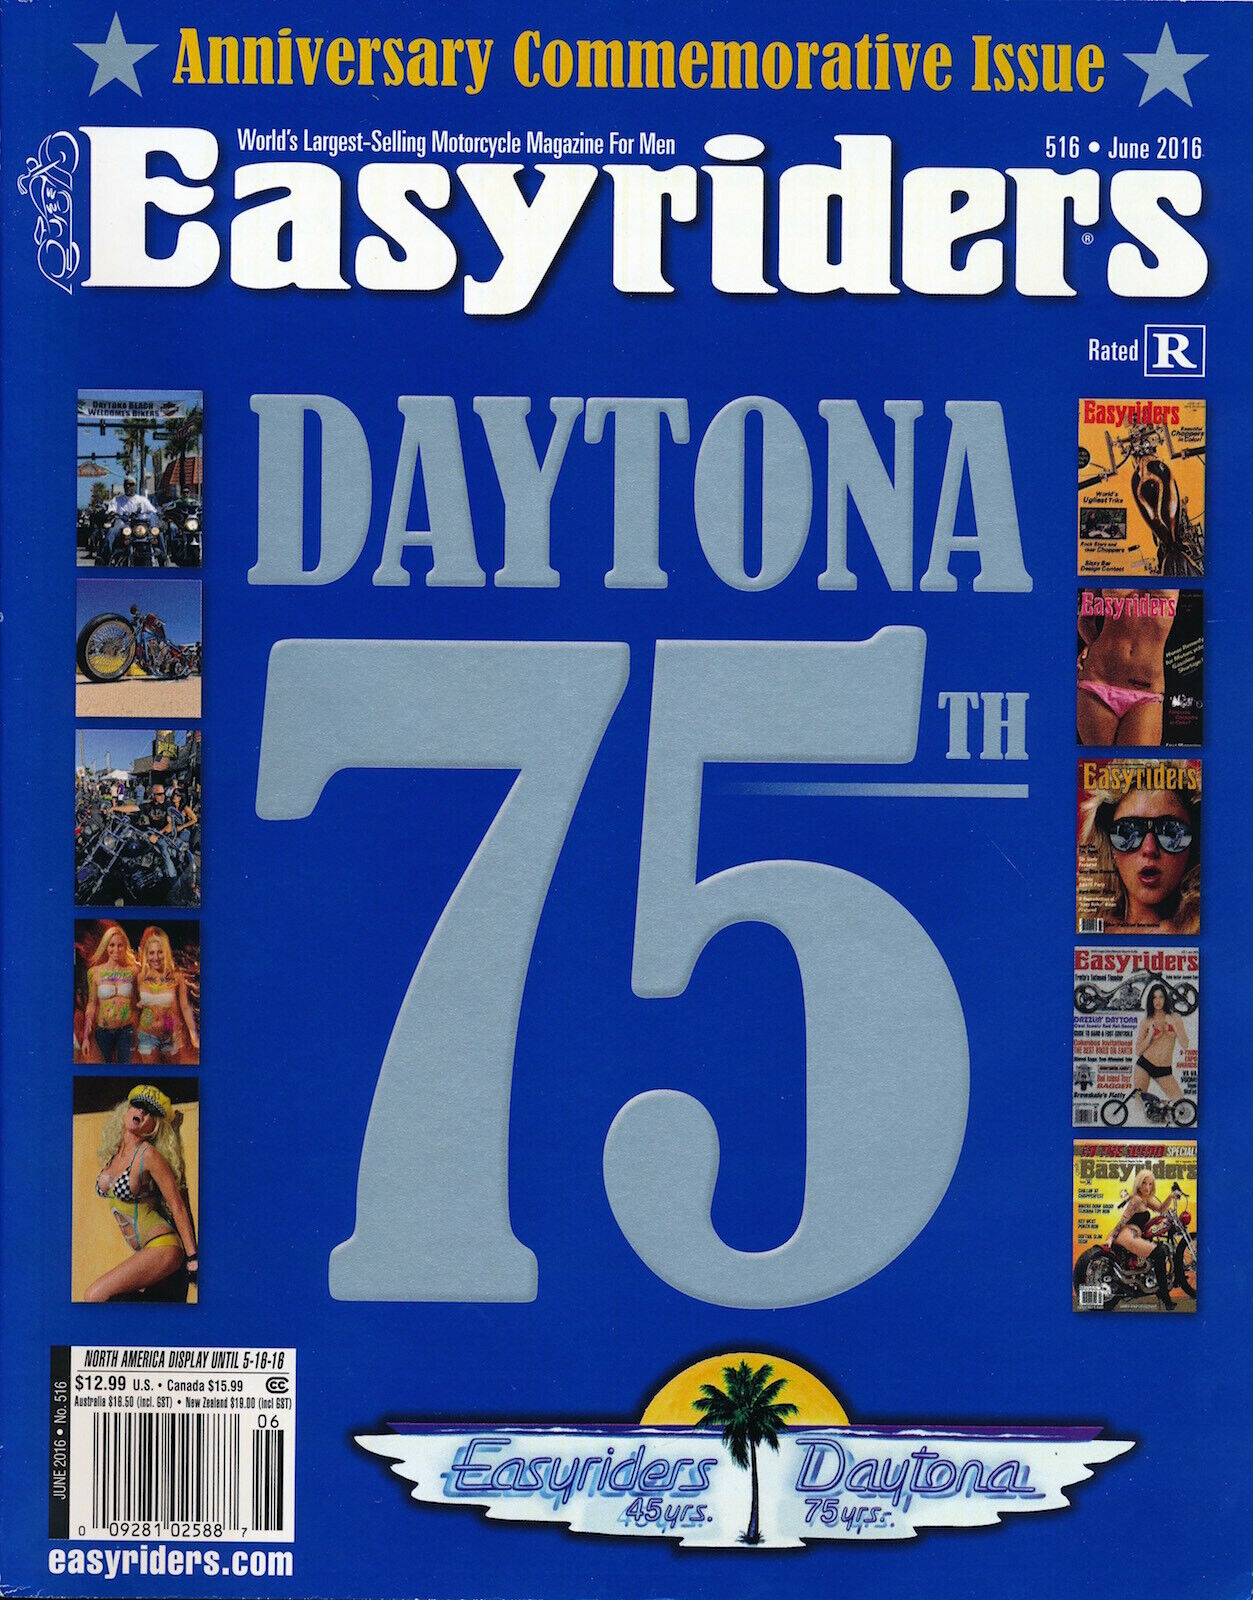 EASYRIDERS June 2016 Motorcycle Magazines CUSTOM Leather V-TWIN Edition 127009 - $2.00